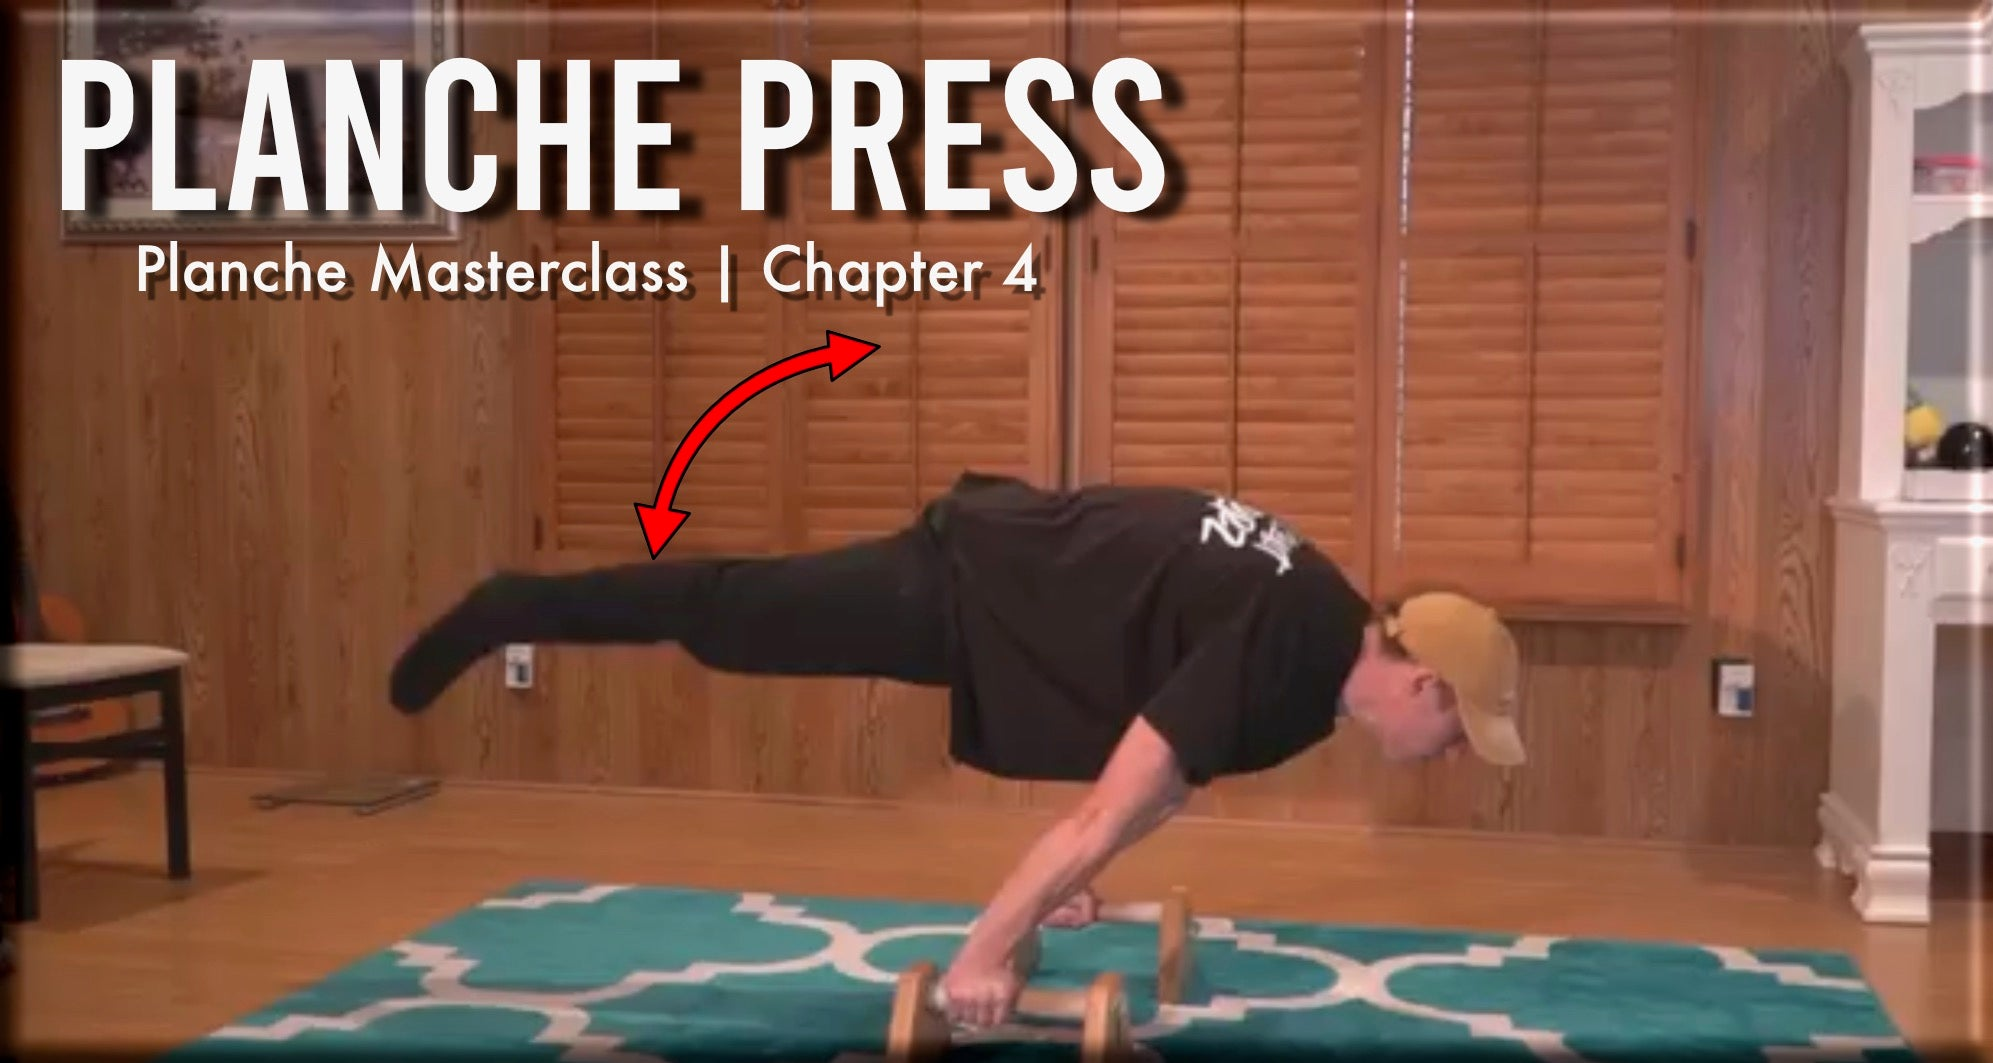 Planche Masterclass Chapter 4